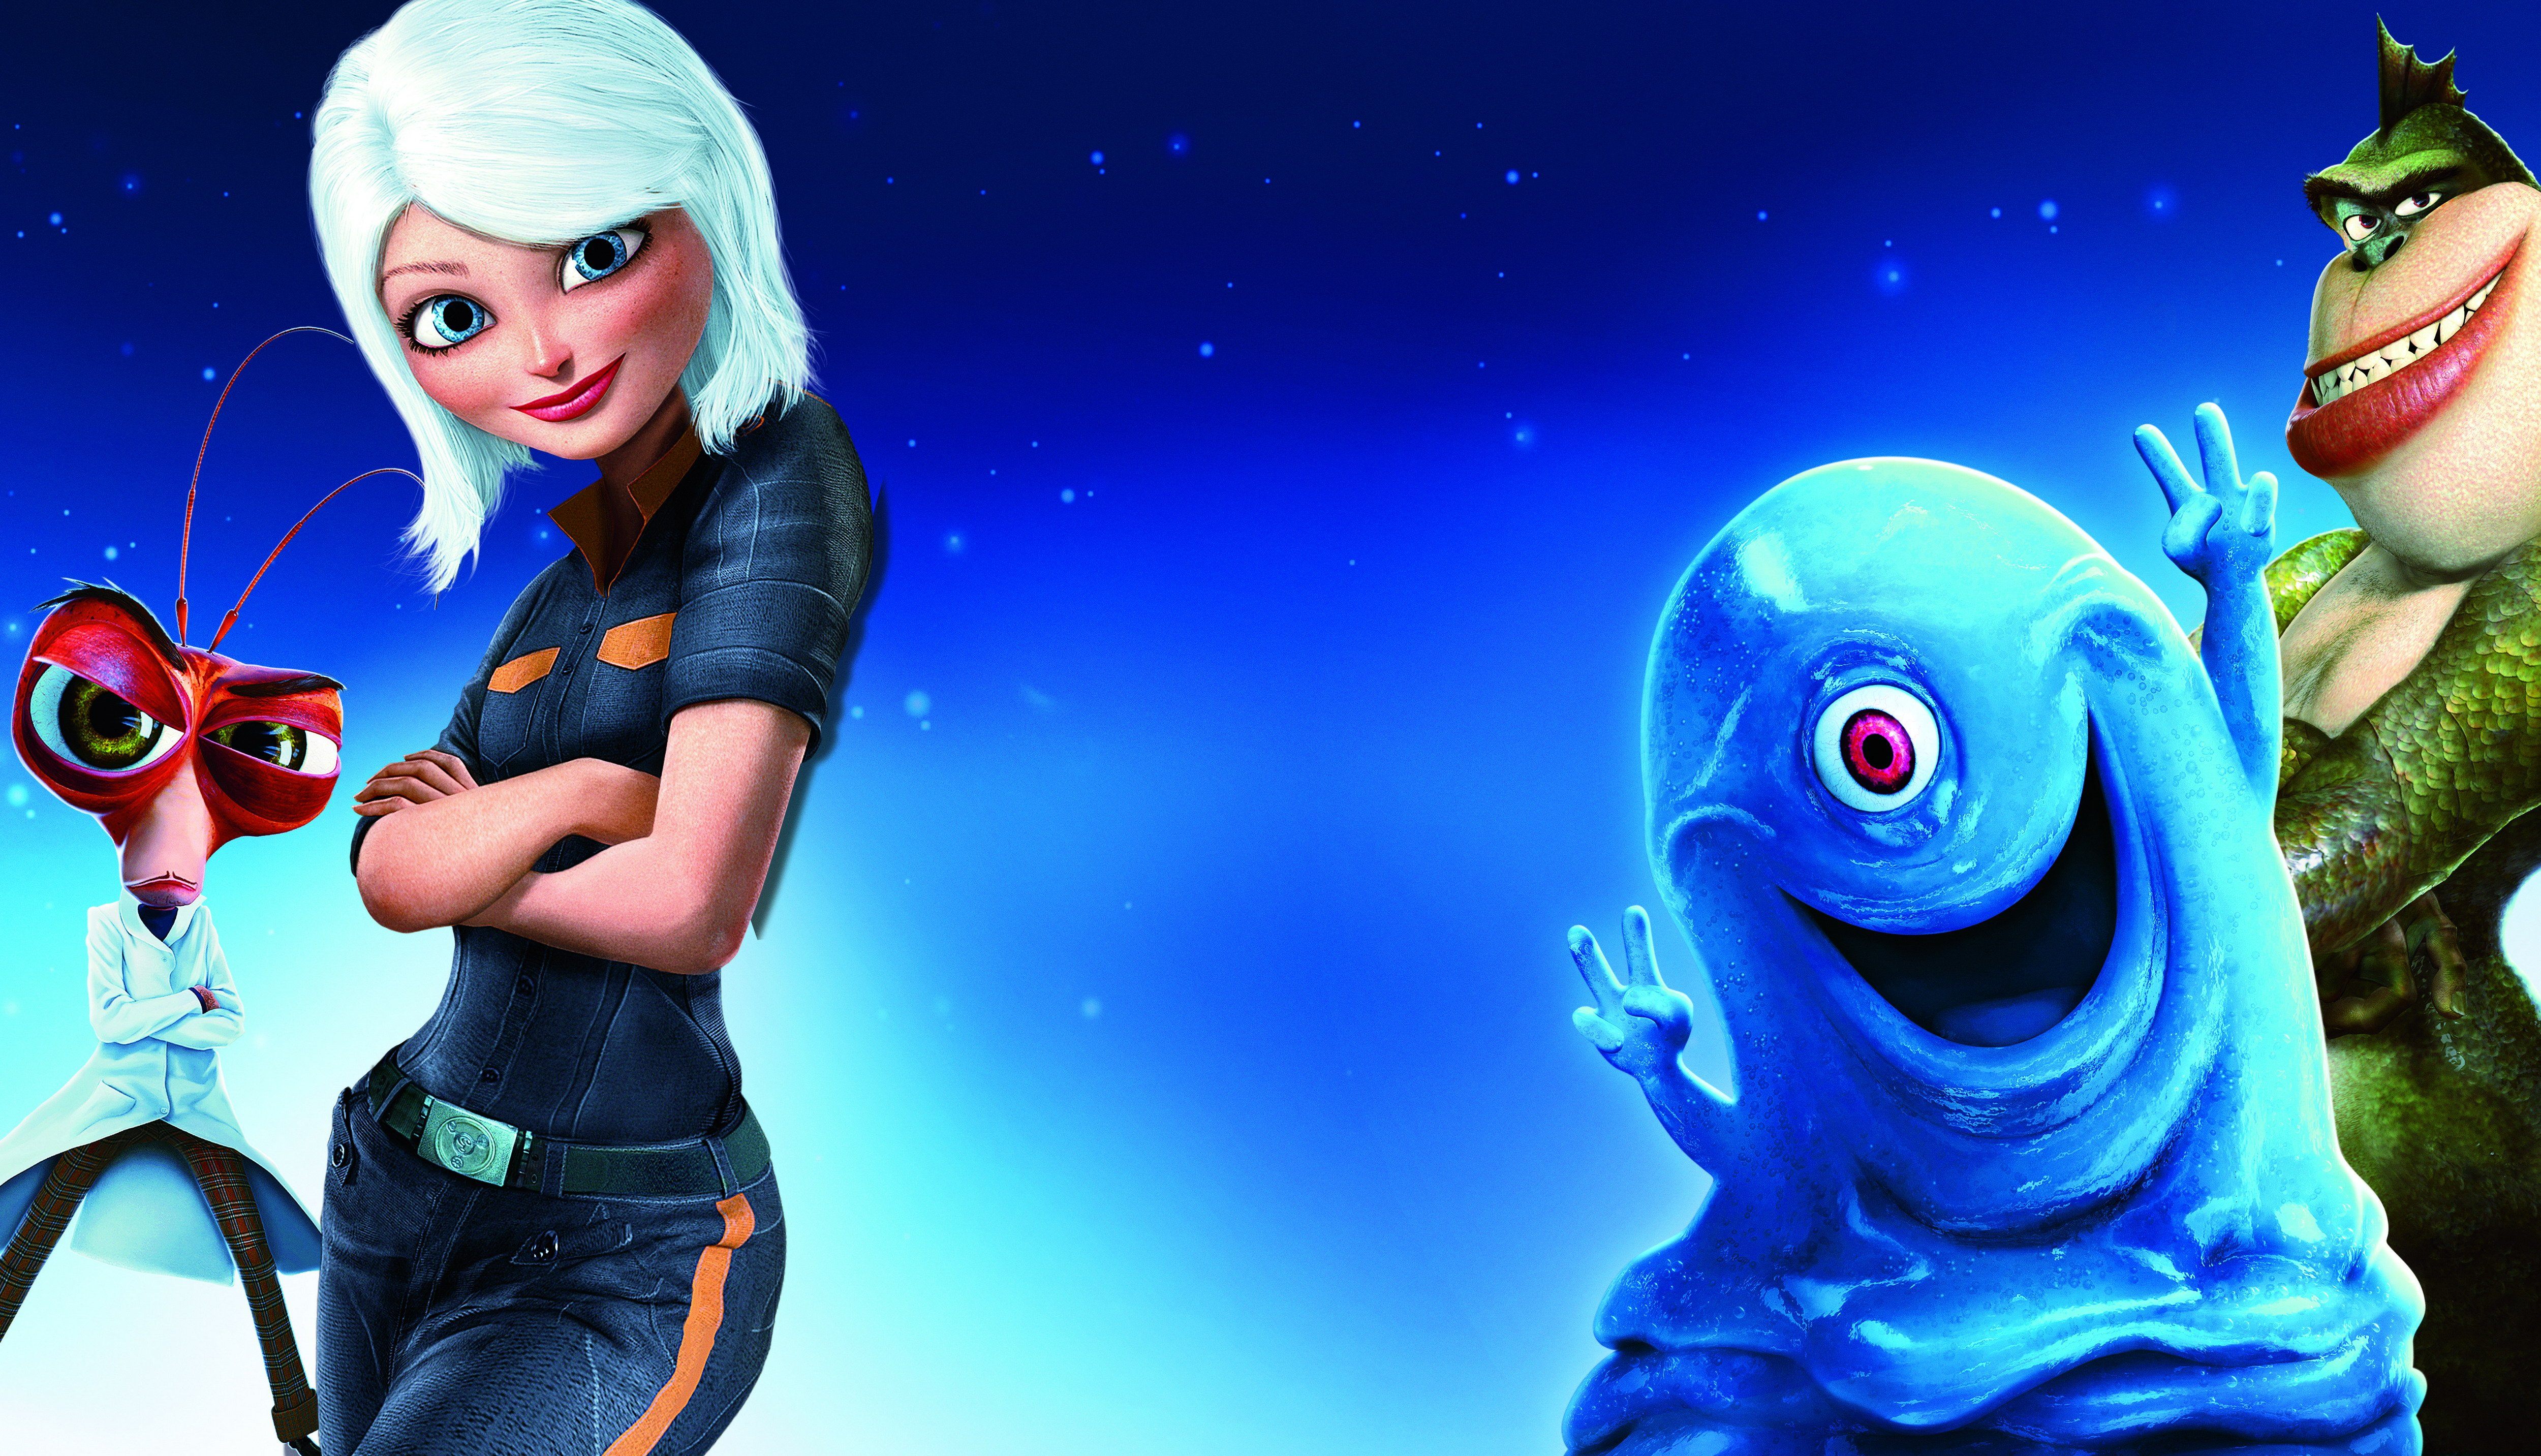 Photo Collection Monsters Vs Aliens The Series Wallpaper